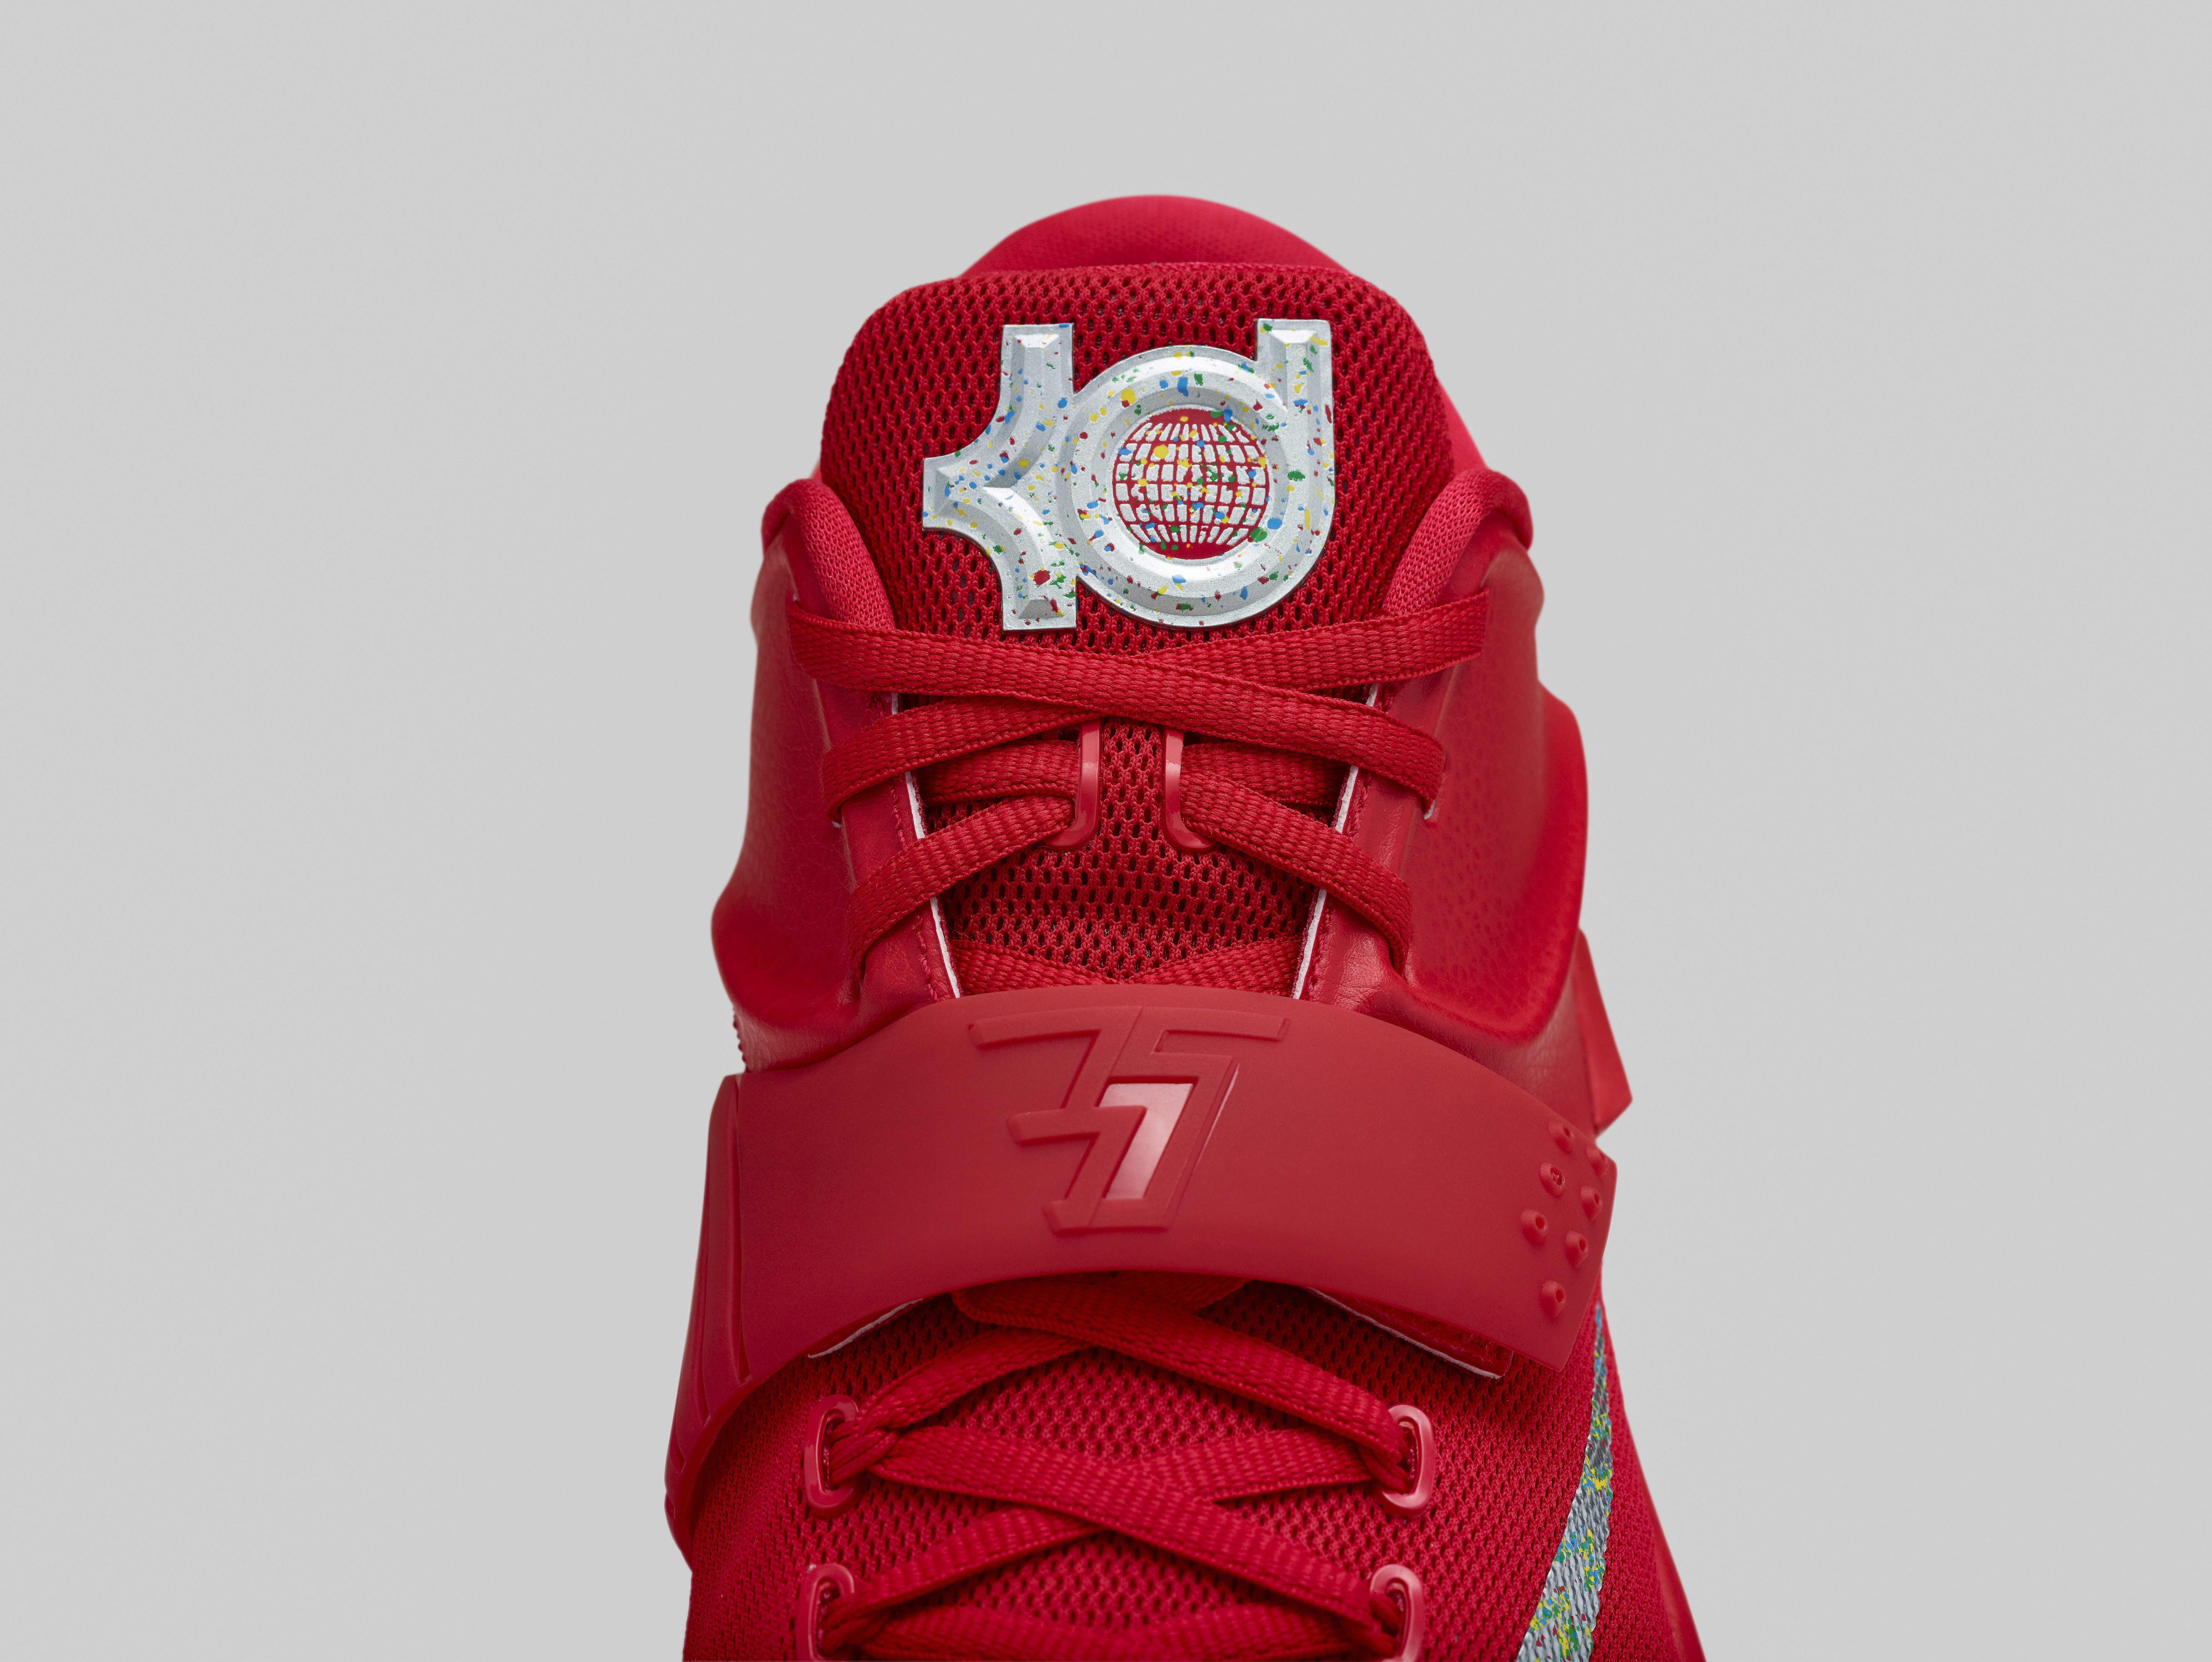 Originals Nike KD 7 Cheap sale 35k Degrees